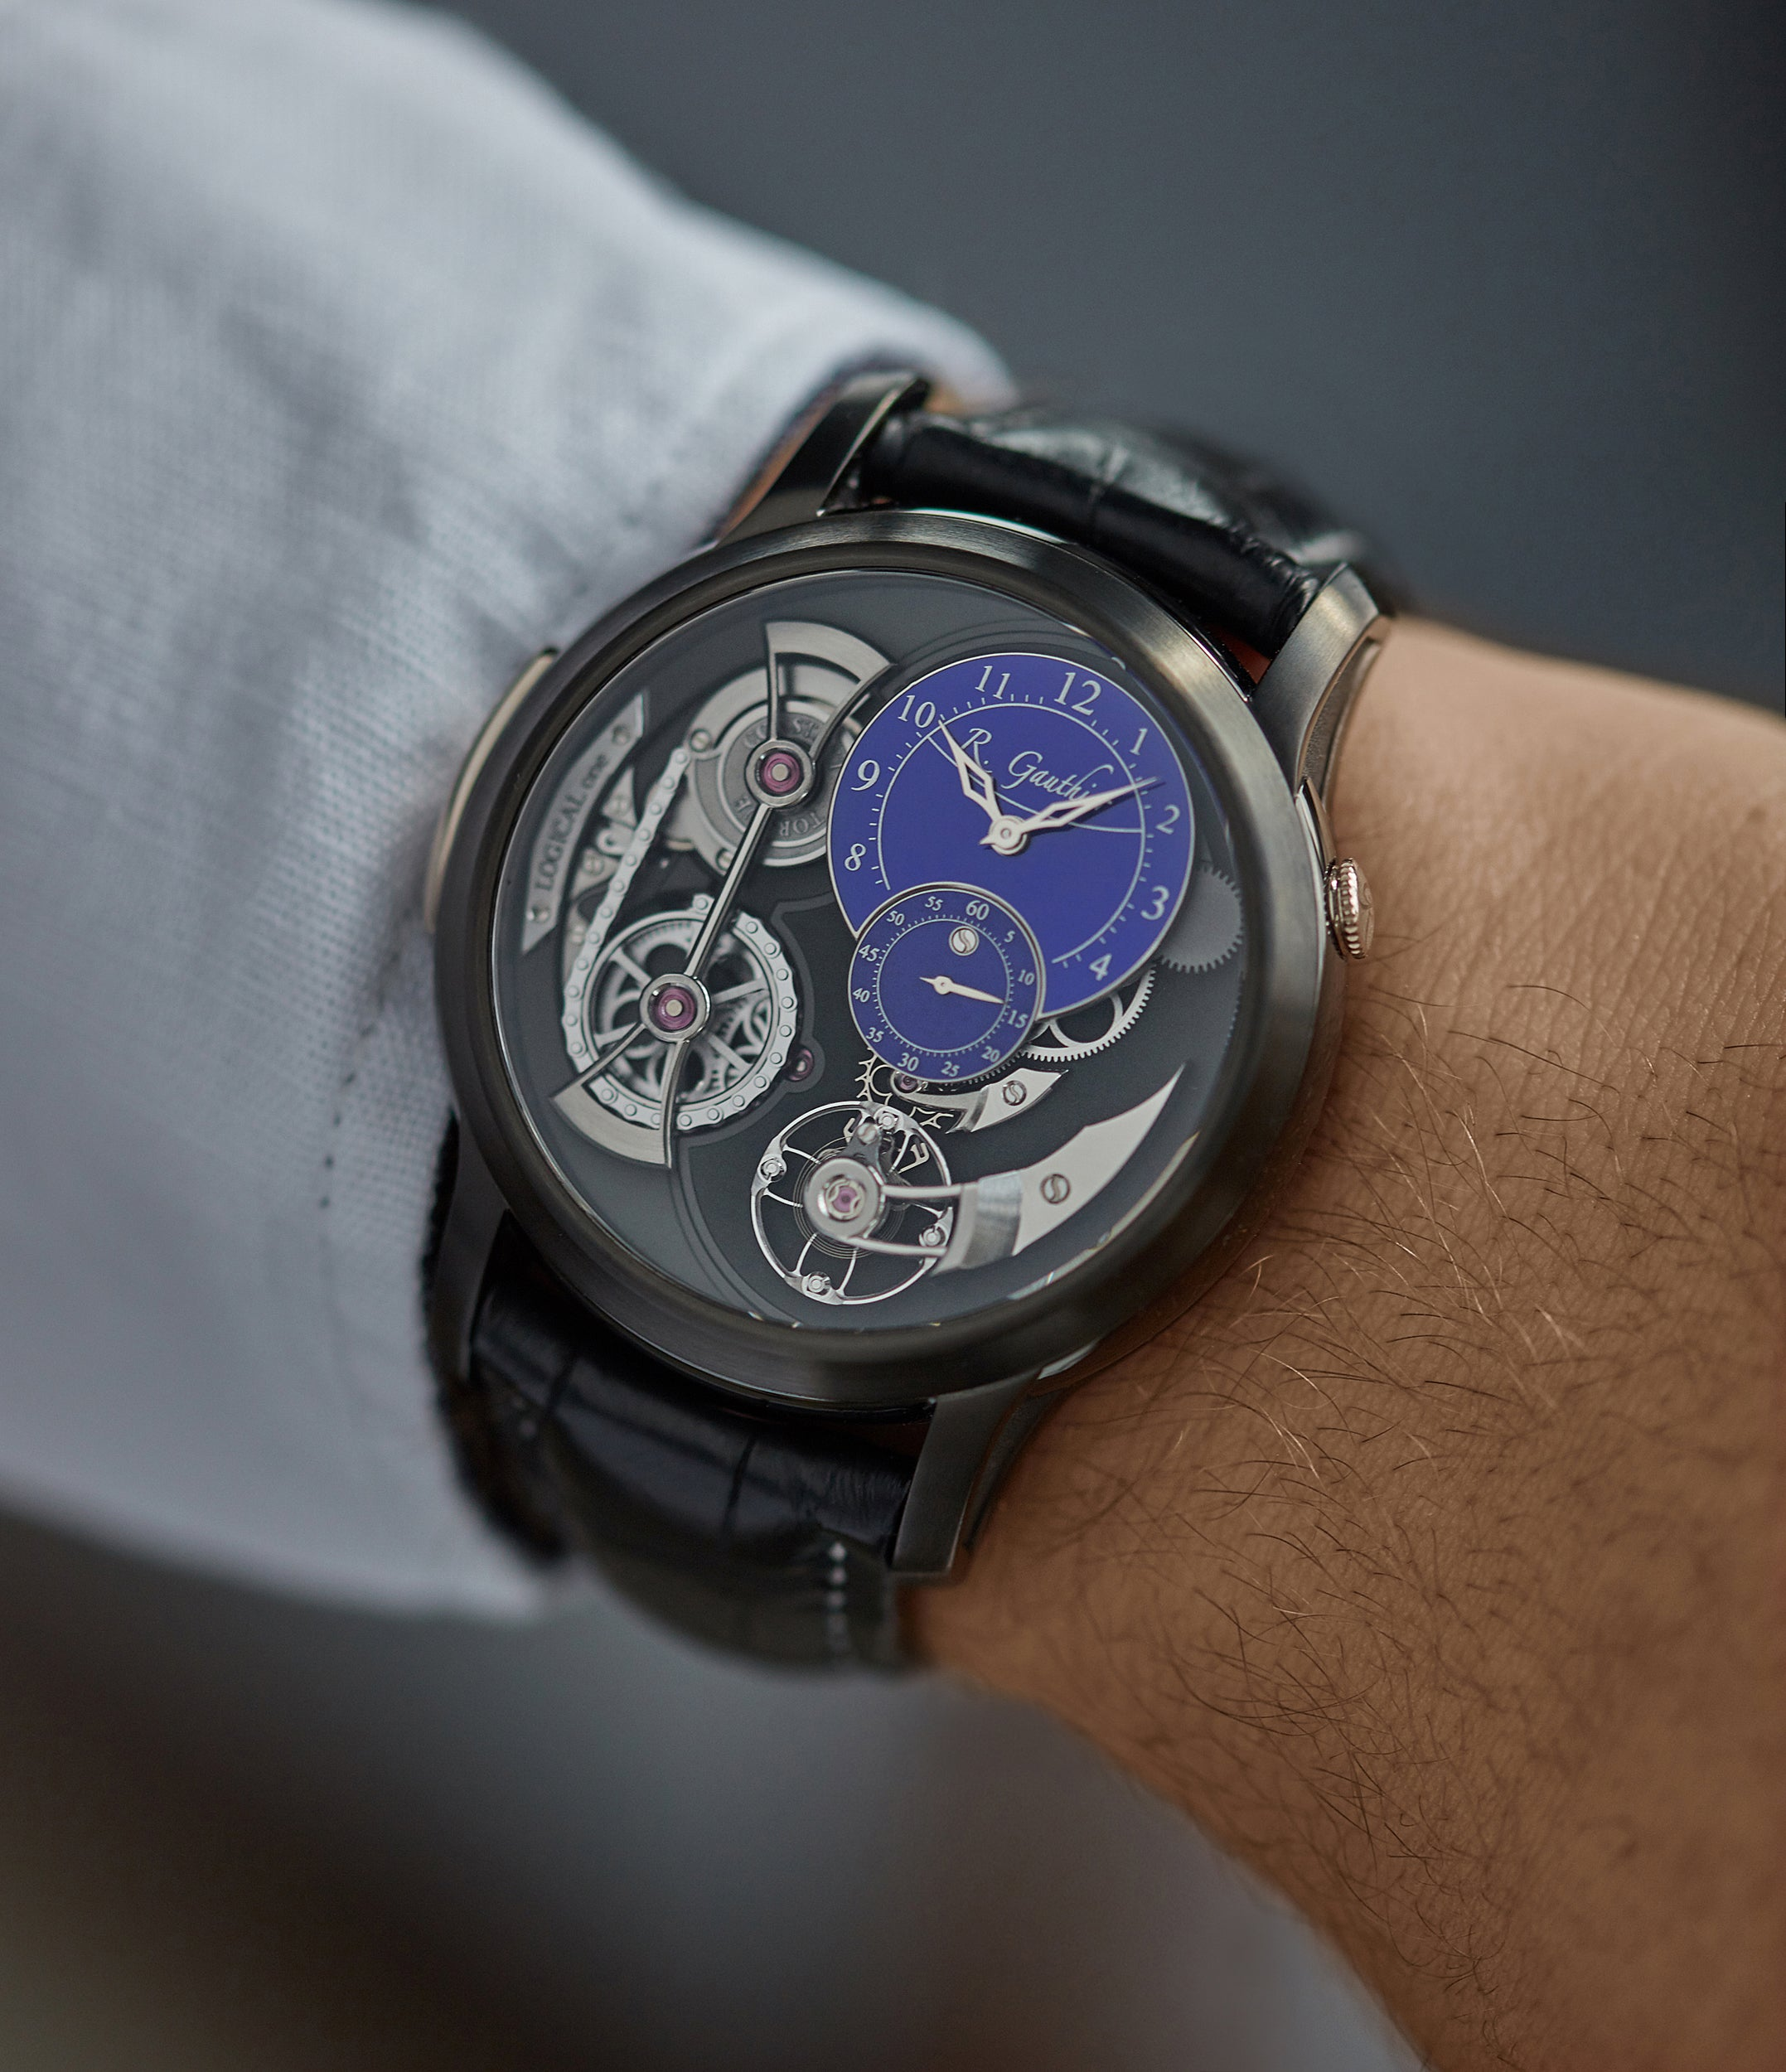 men's luxury wristwatch Romain Gauthier Limited Edition Logical One BTG titanium watch blue enamel dial for sale online at A Collected Man London UK specialist of independent watchmakers